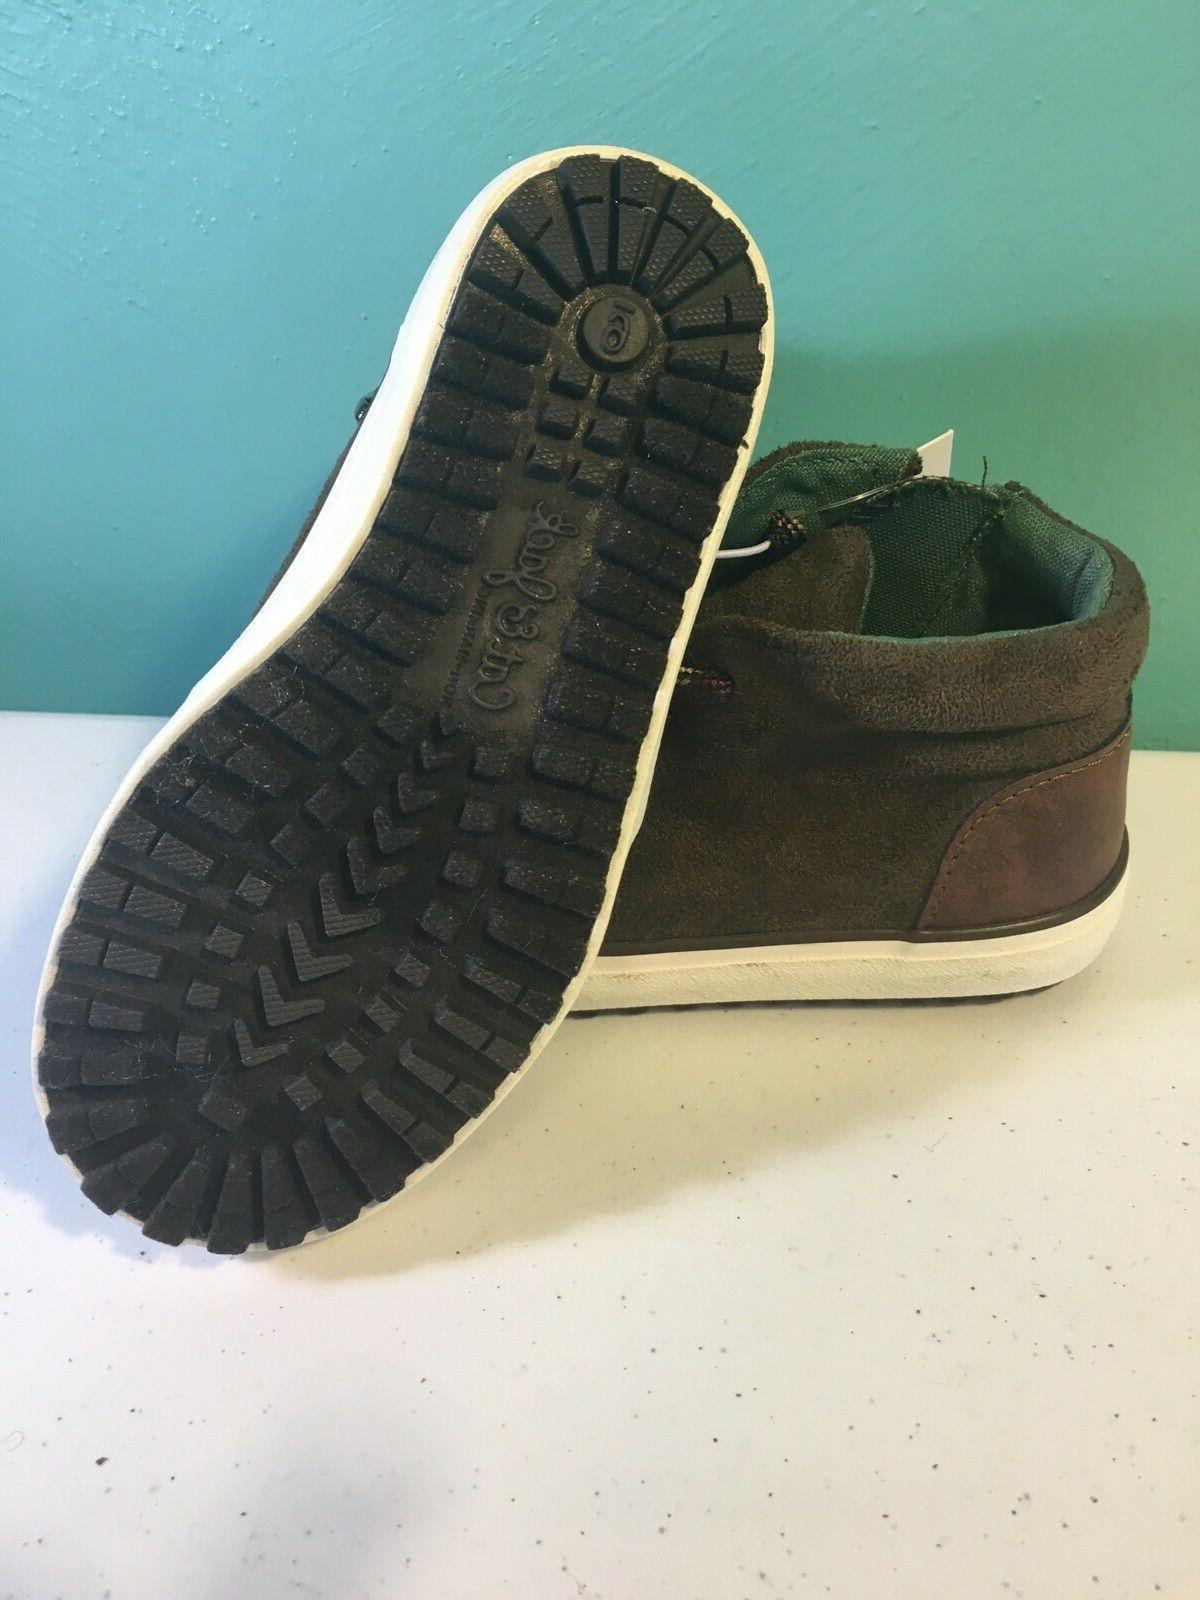 Cat Axel Shoes Sneaker sizes 6 7 8 9 10